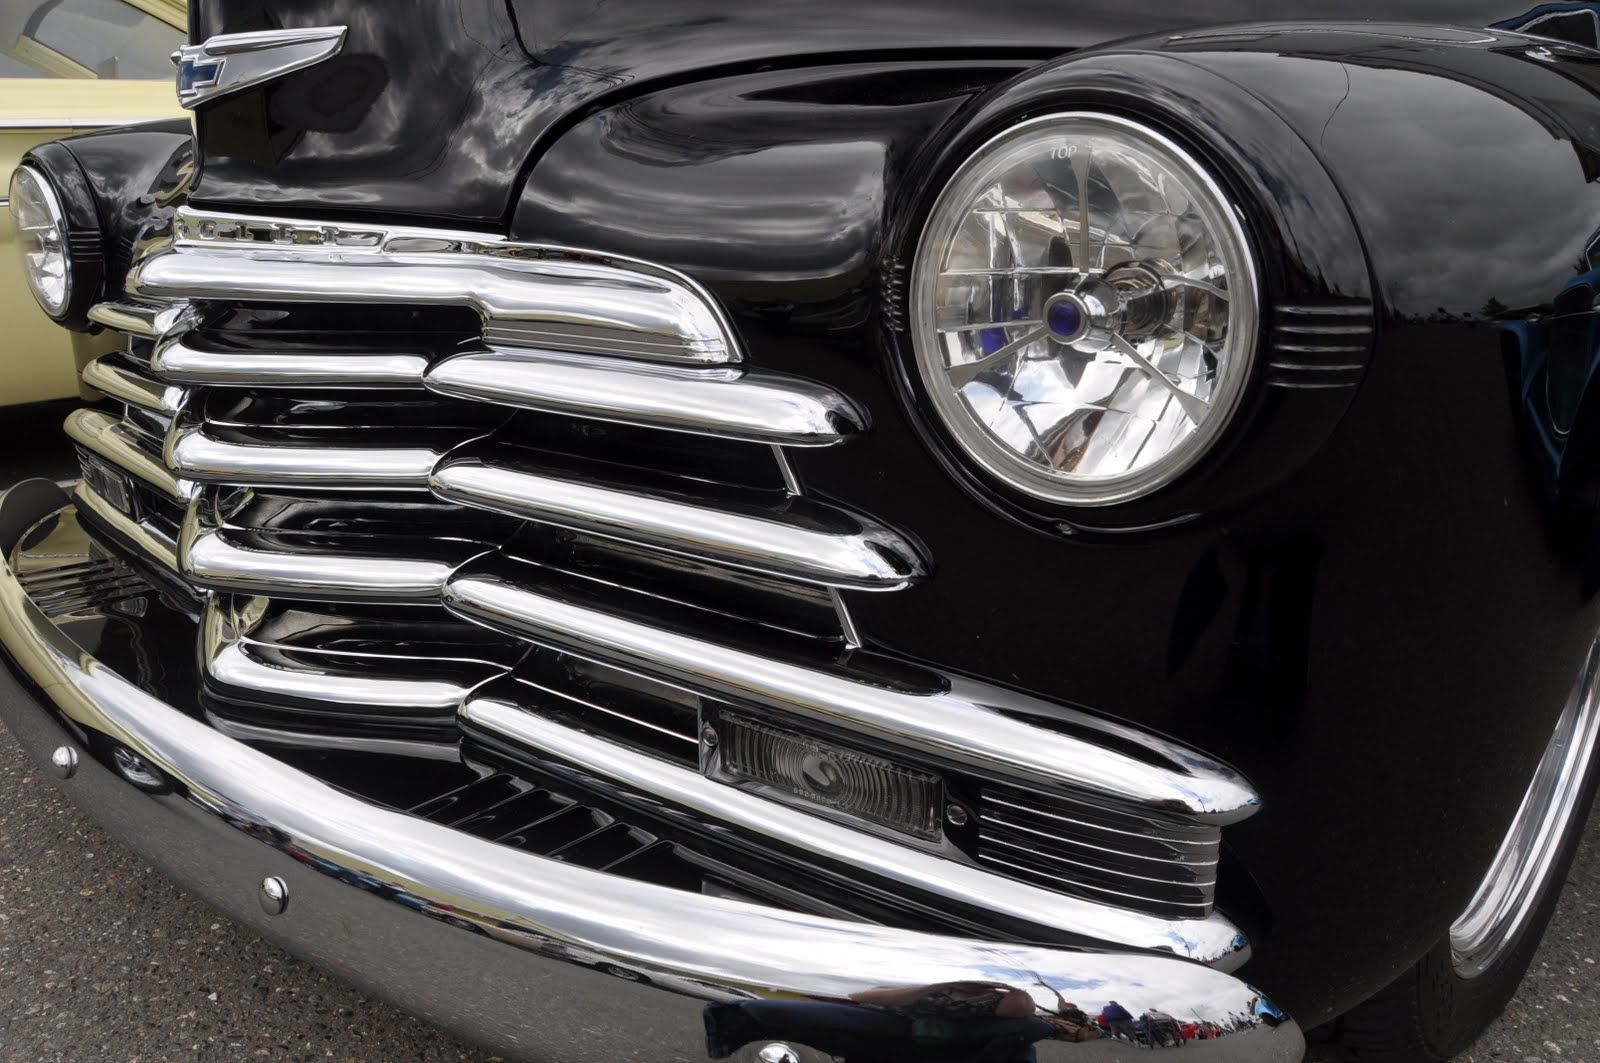 photos of vintage car grills - Google Search   GRILLES & TAIL ...